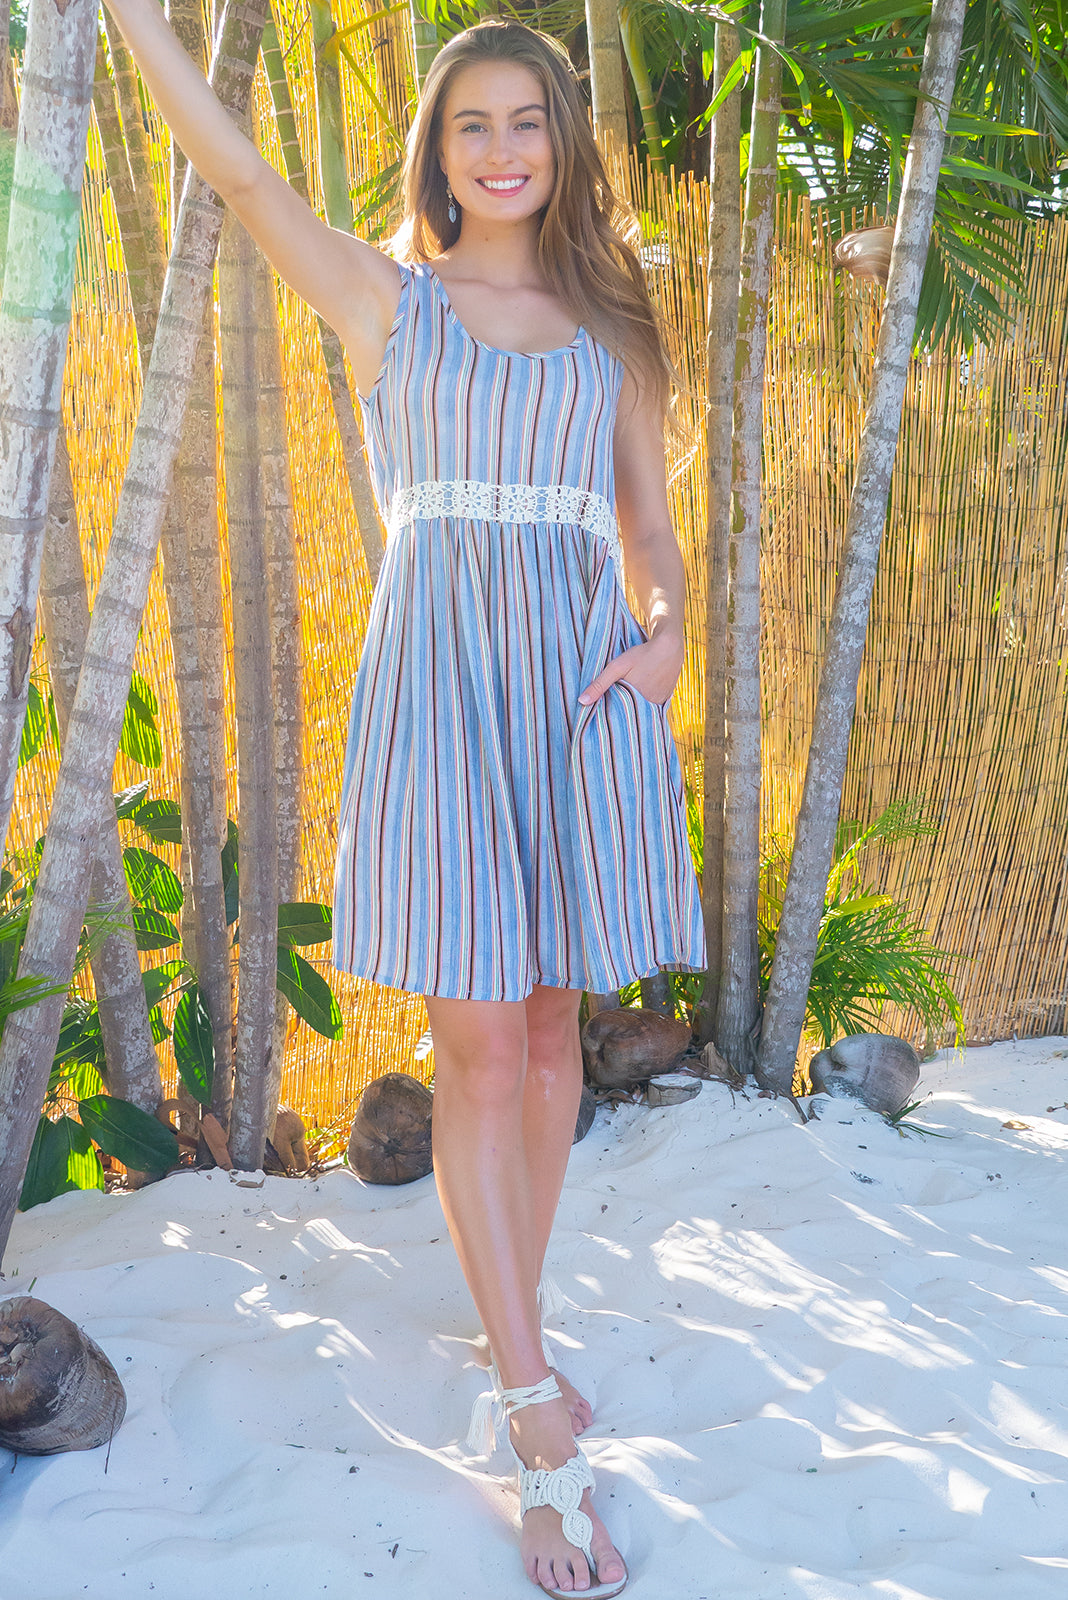 Sandi Beach Oceania Dress is a soft cut sleeveless dress with a adjustable button tab with feature cotton lace in a soft powder blue stripe printed crinkle textured woven rayon